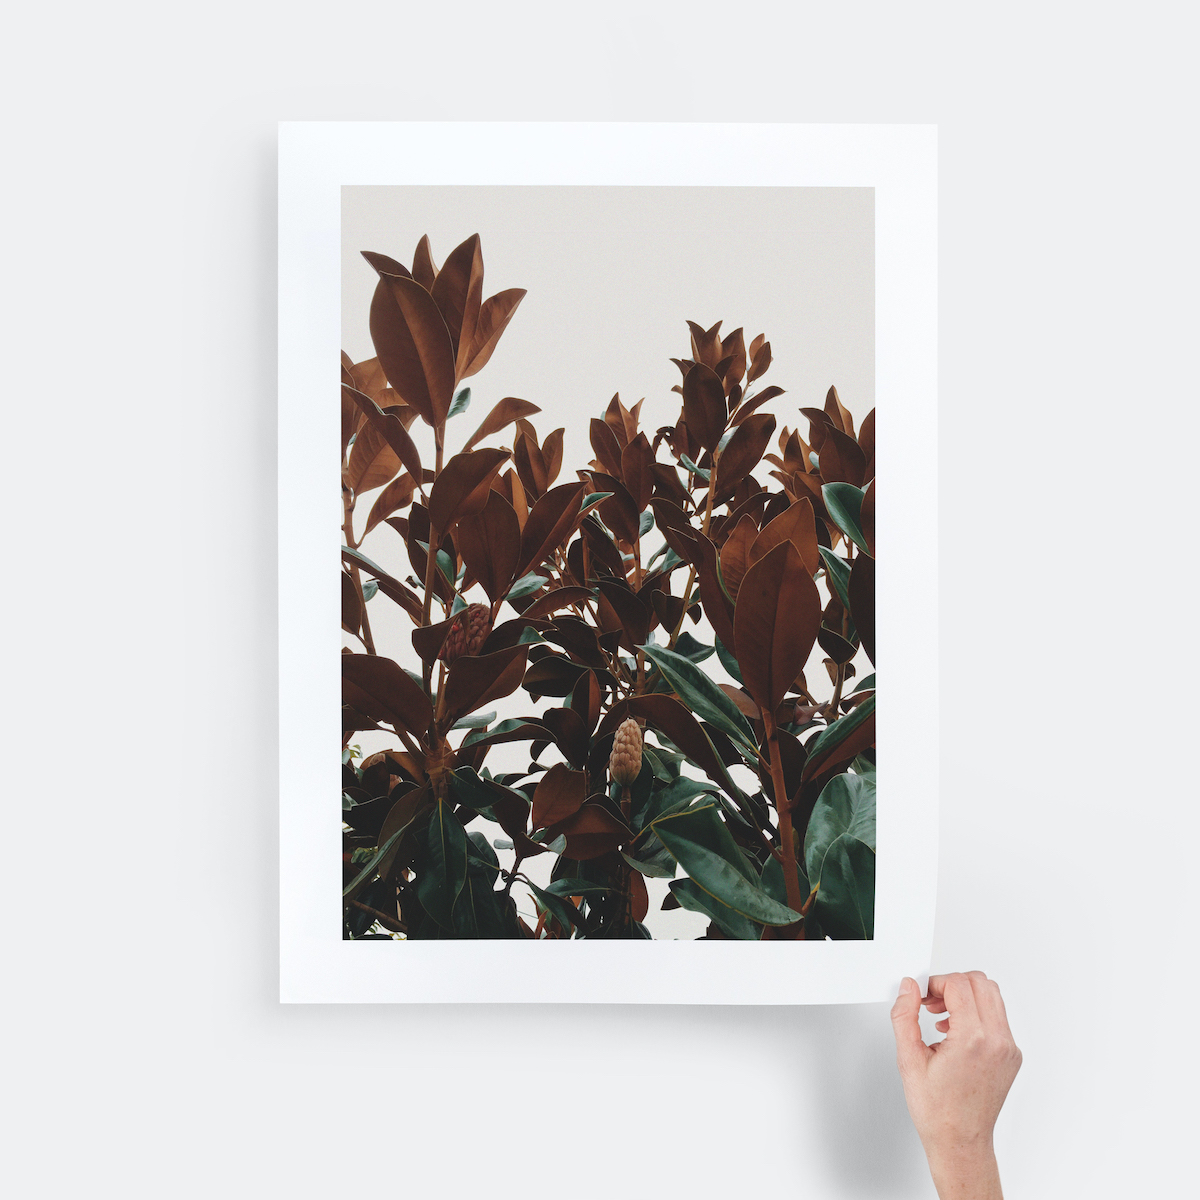 hand holding a giclée print of red flowers by the corner